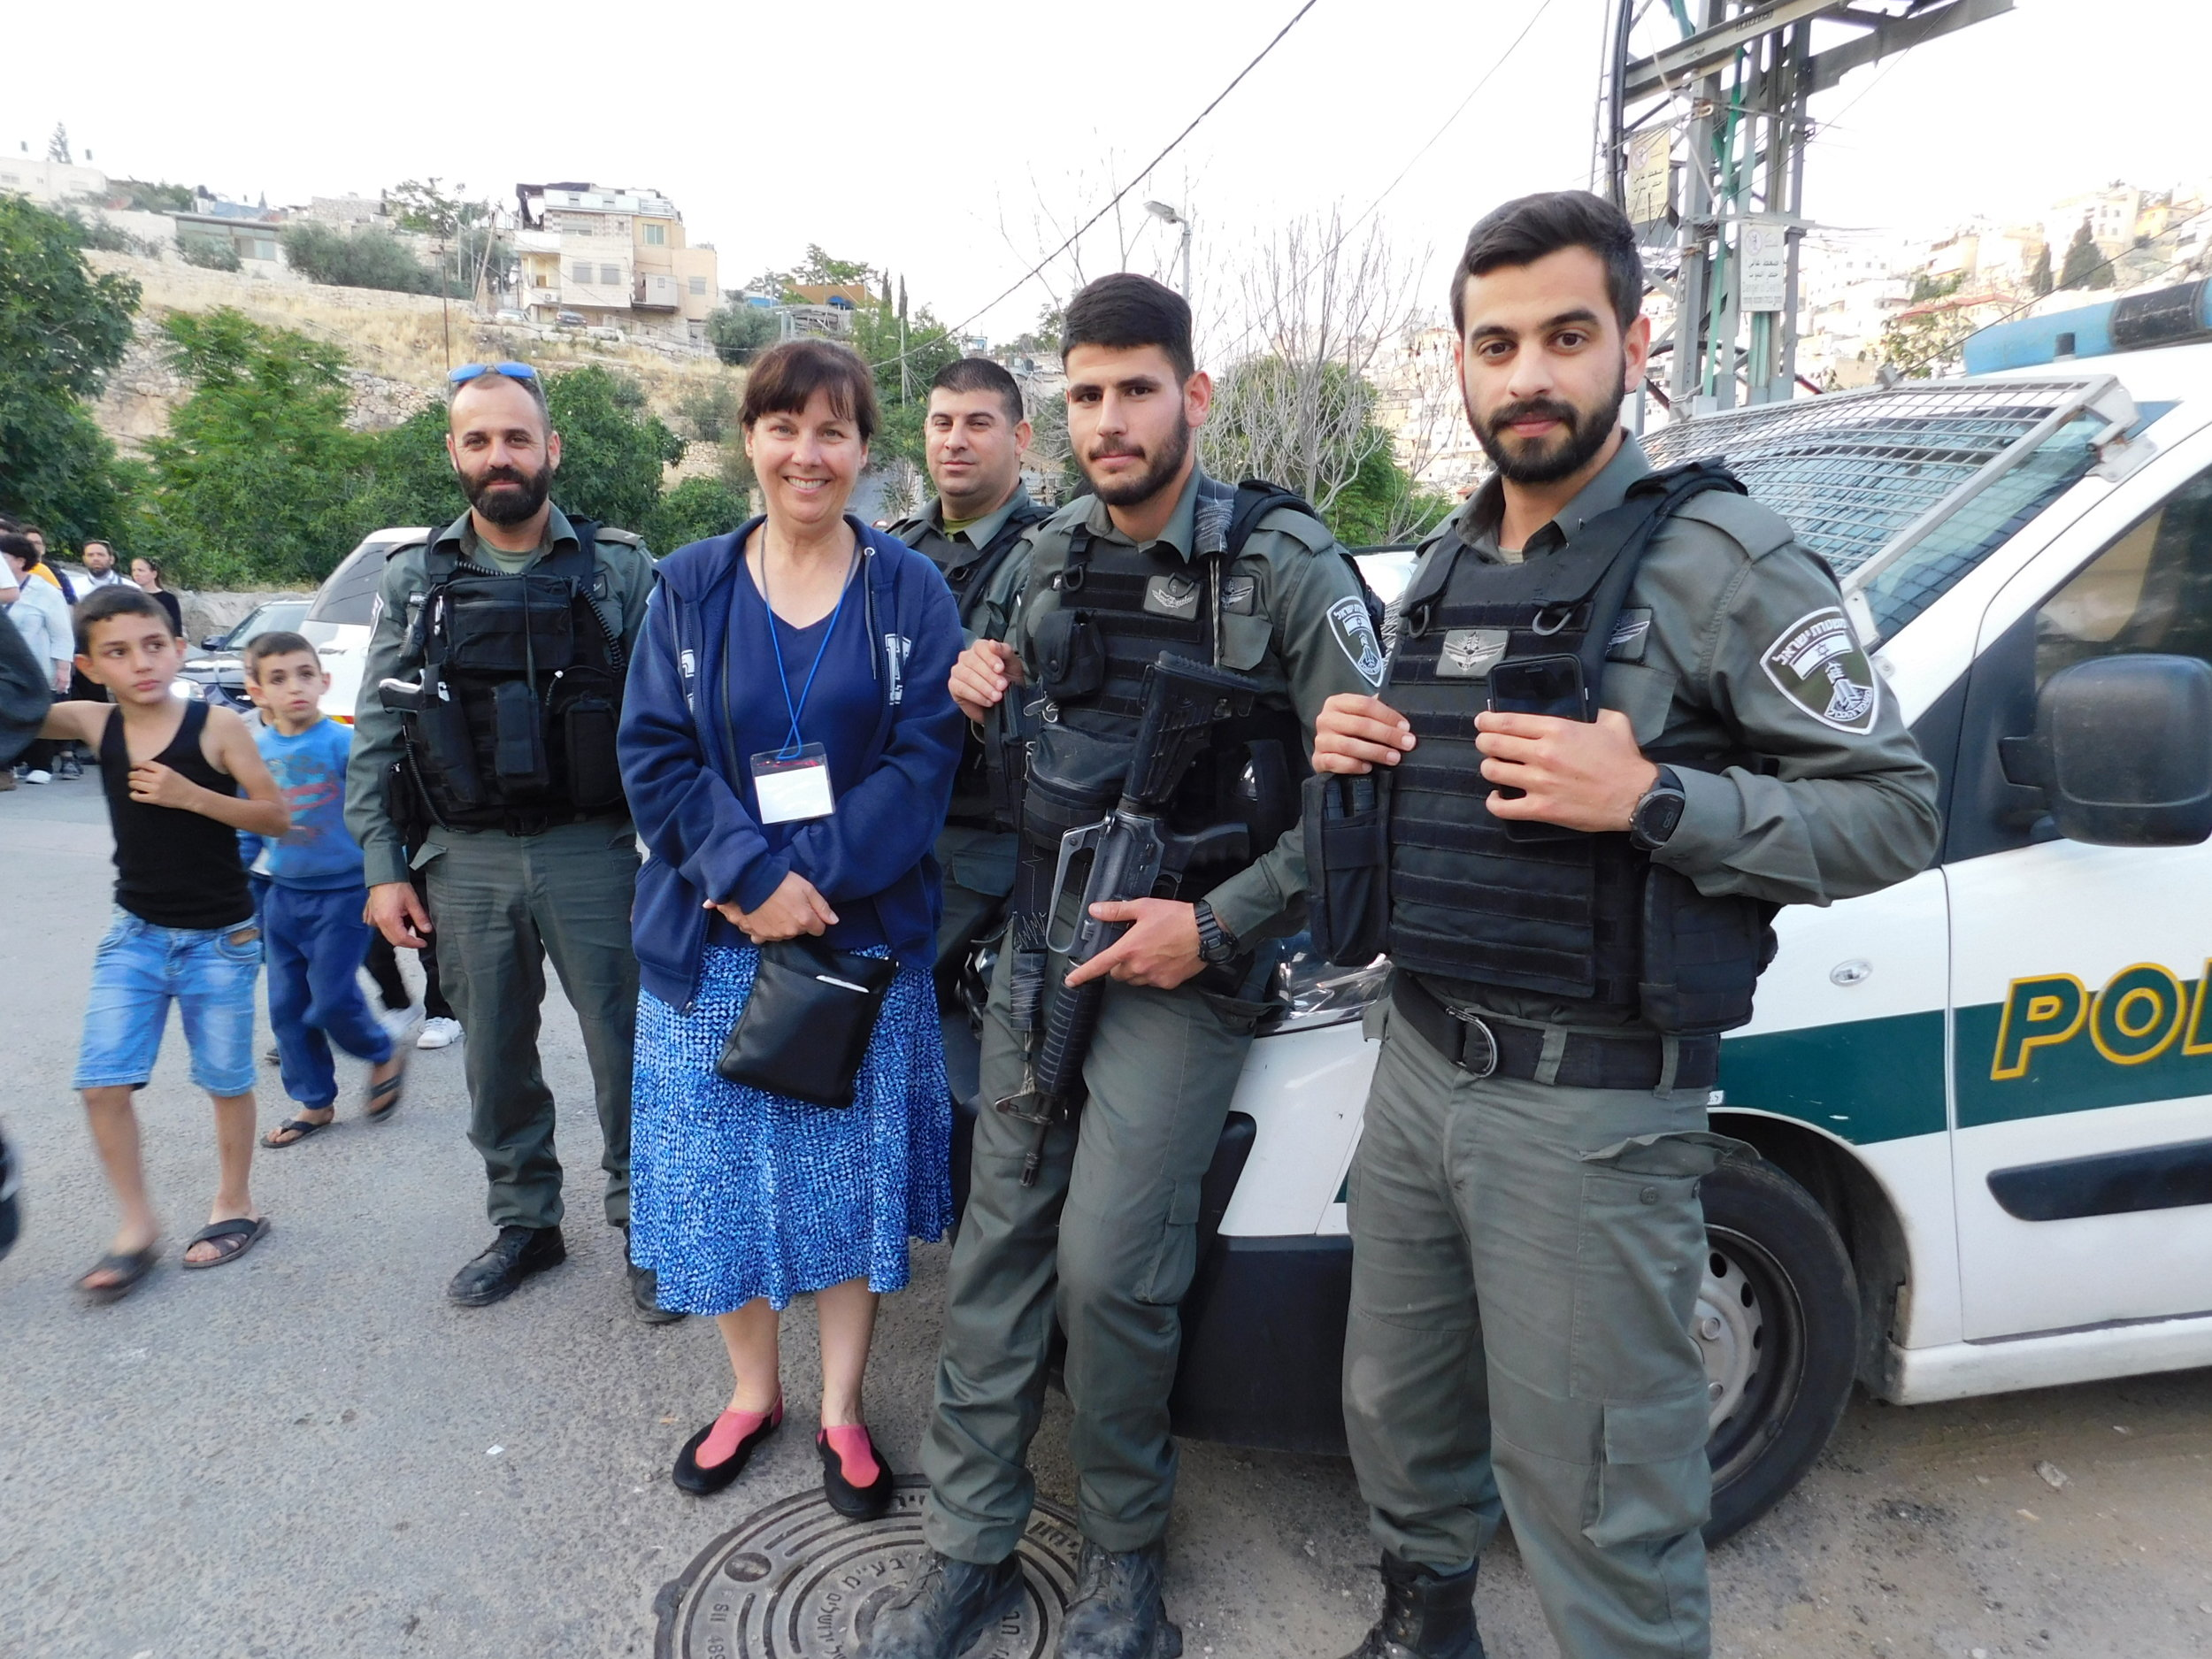 The Israeli Defense Force love having their picture taken with us